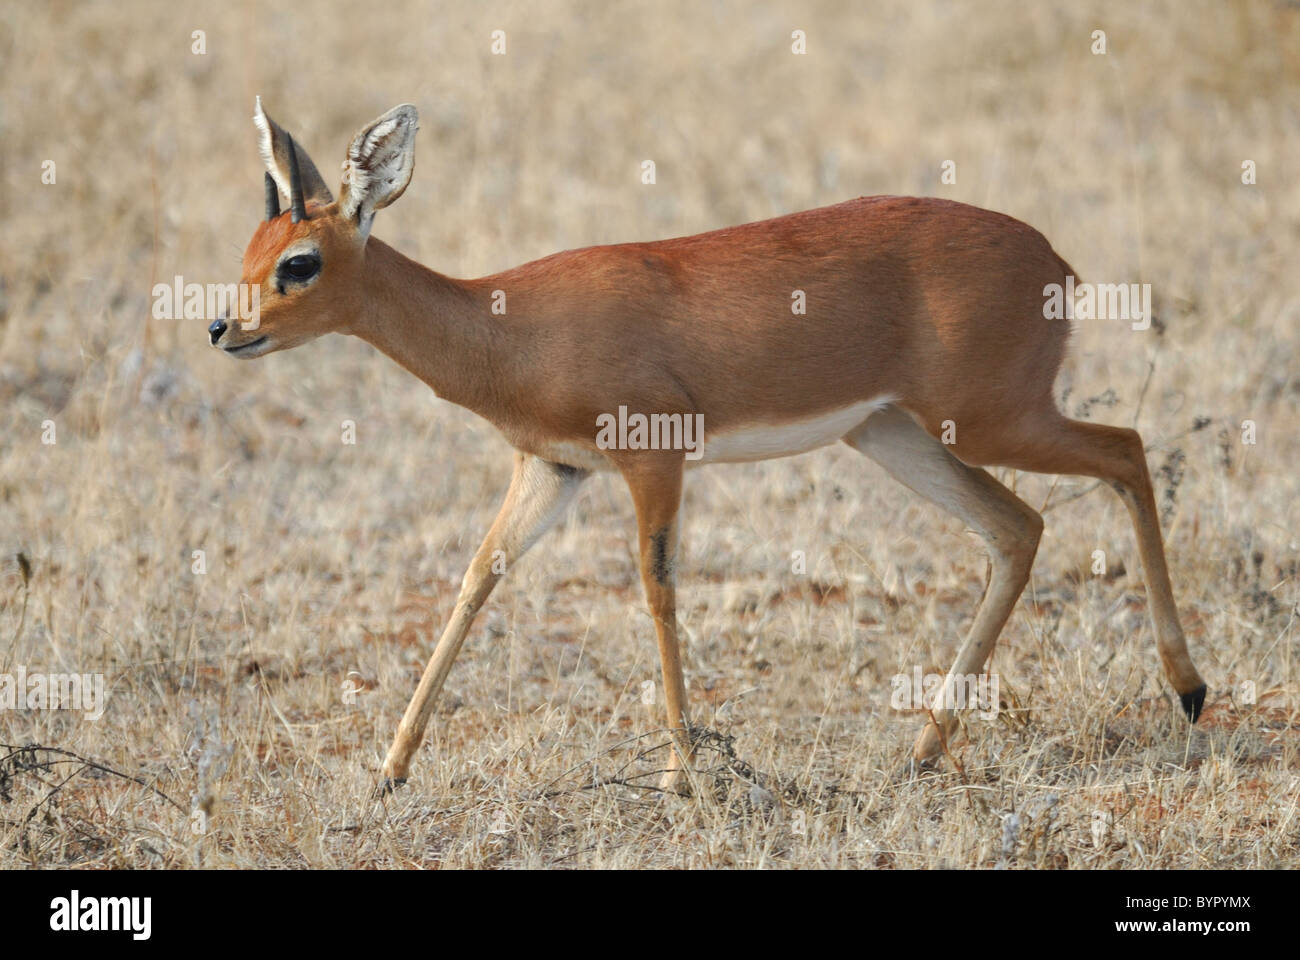 Male Steenbok in Kruger National Park, South Africa - Stock Image